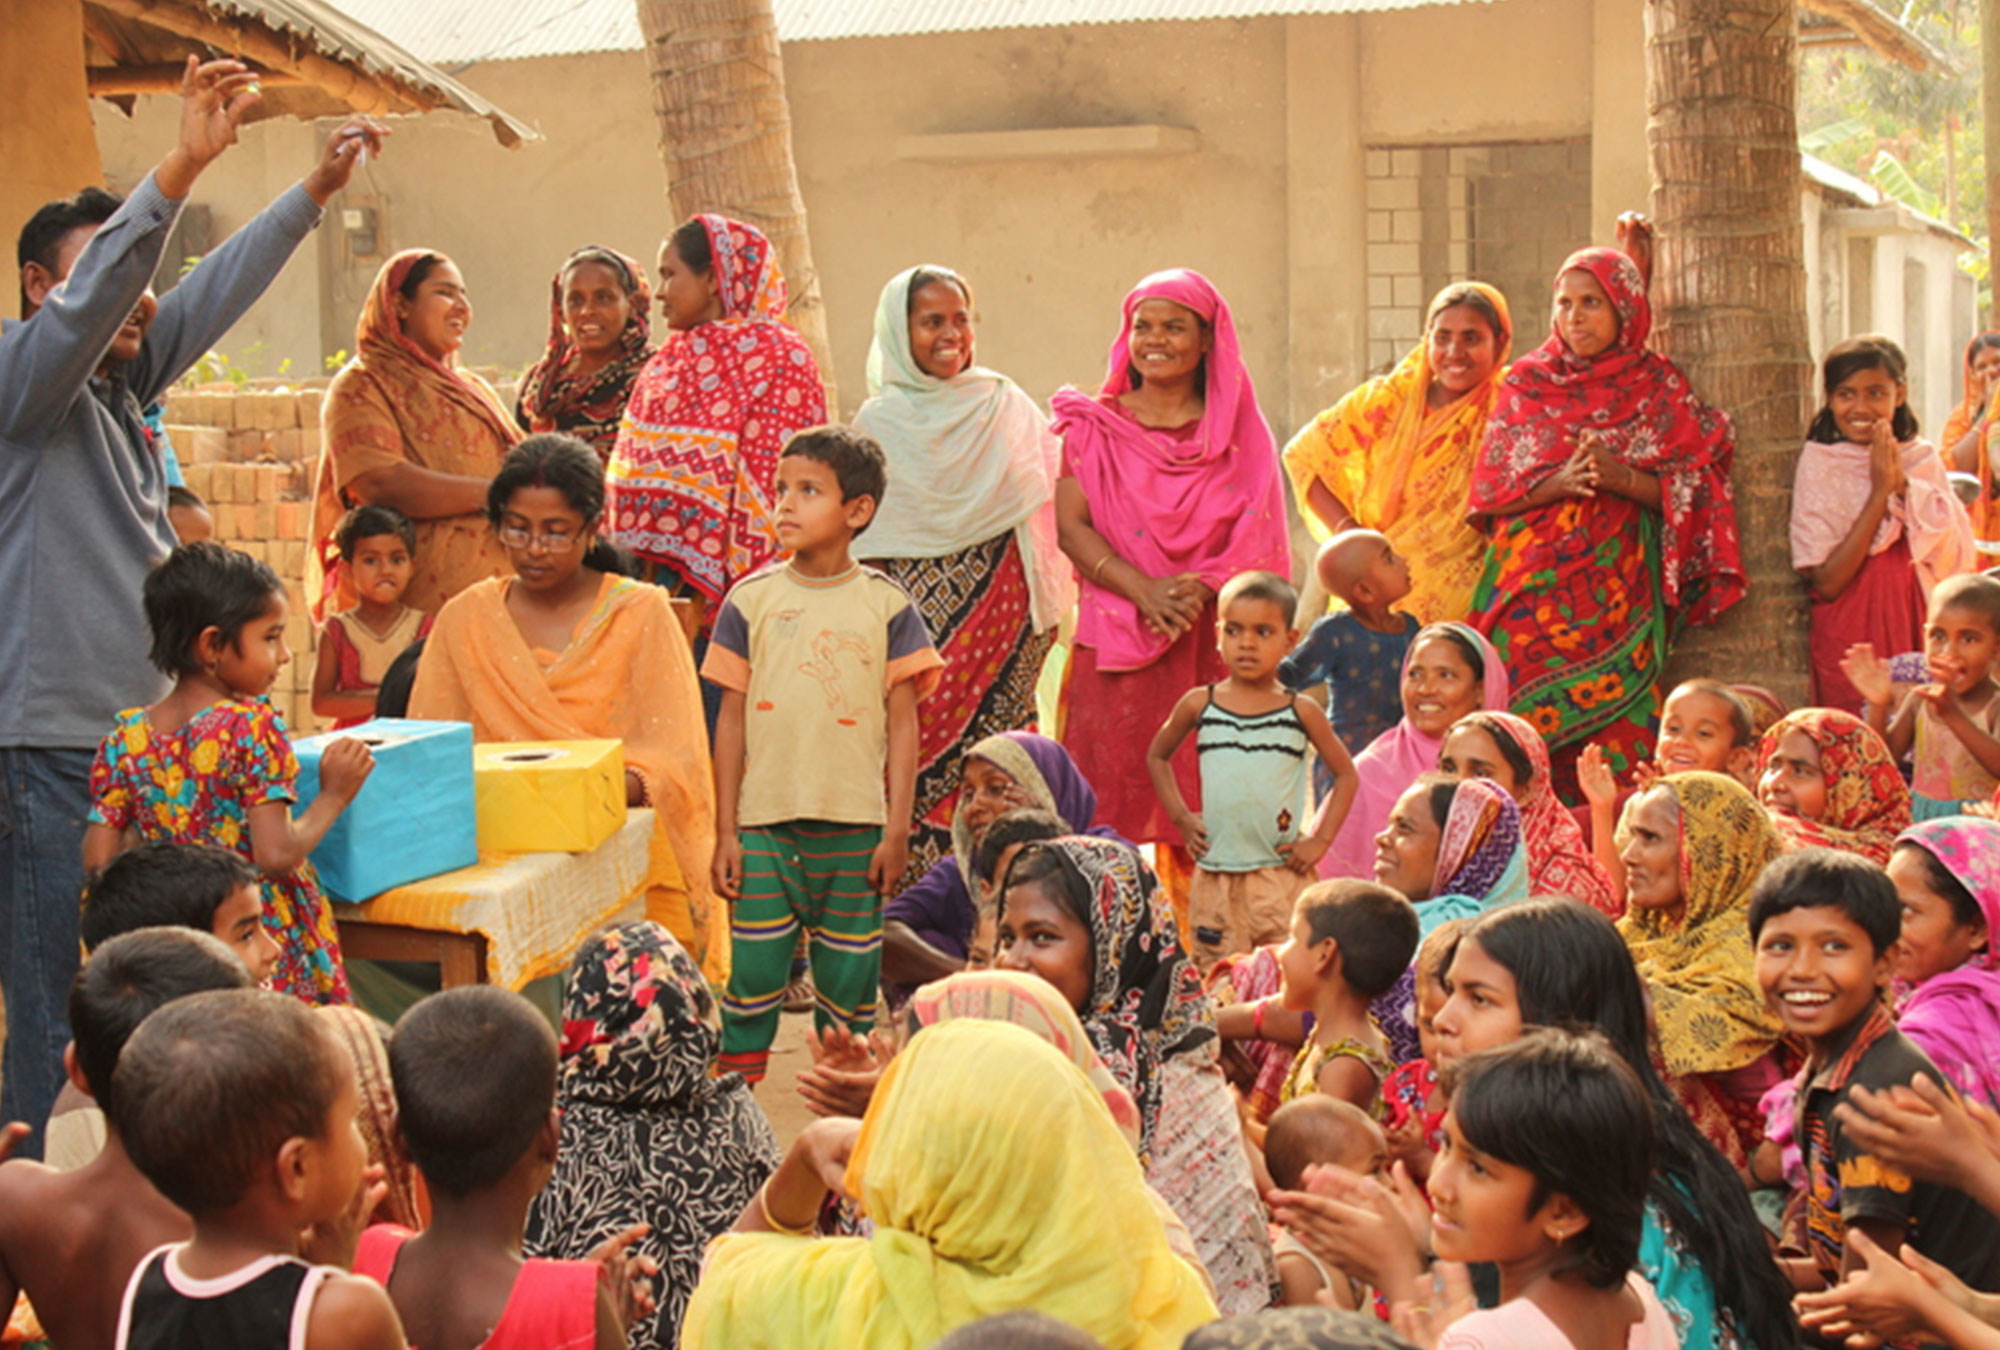 Crowd of women in bright saris watch man hold up token from cardboard box